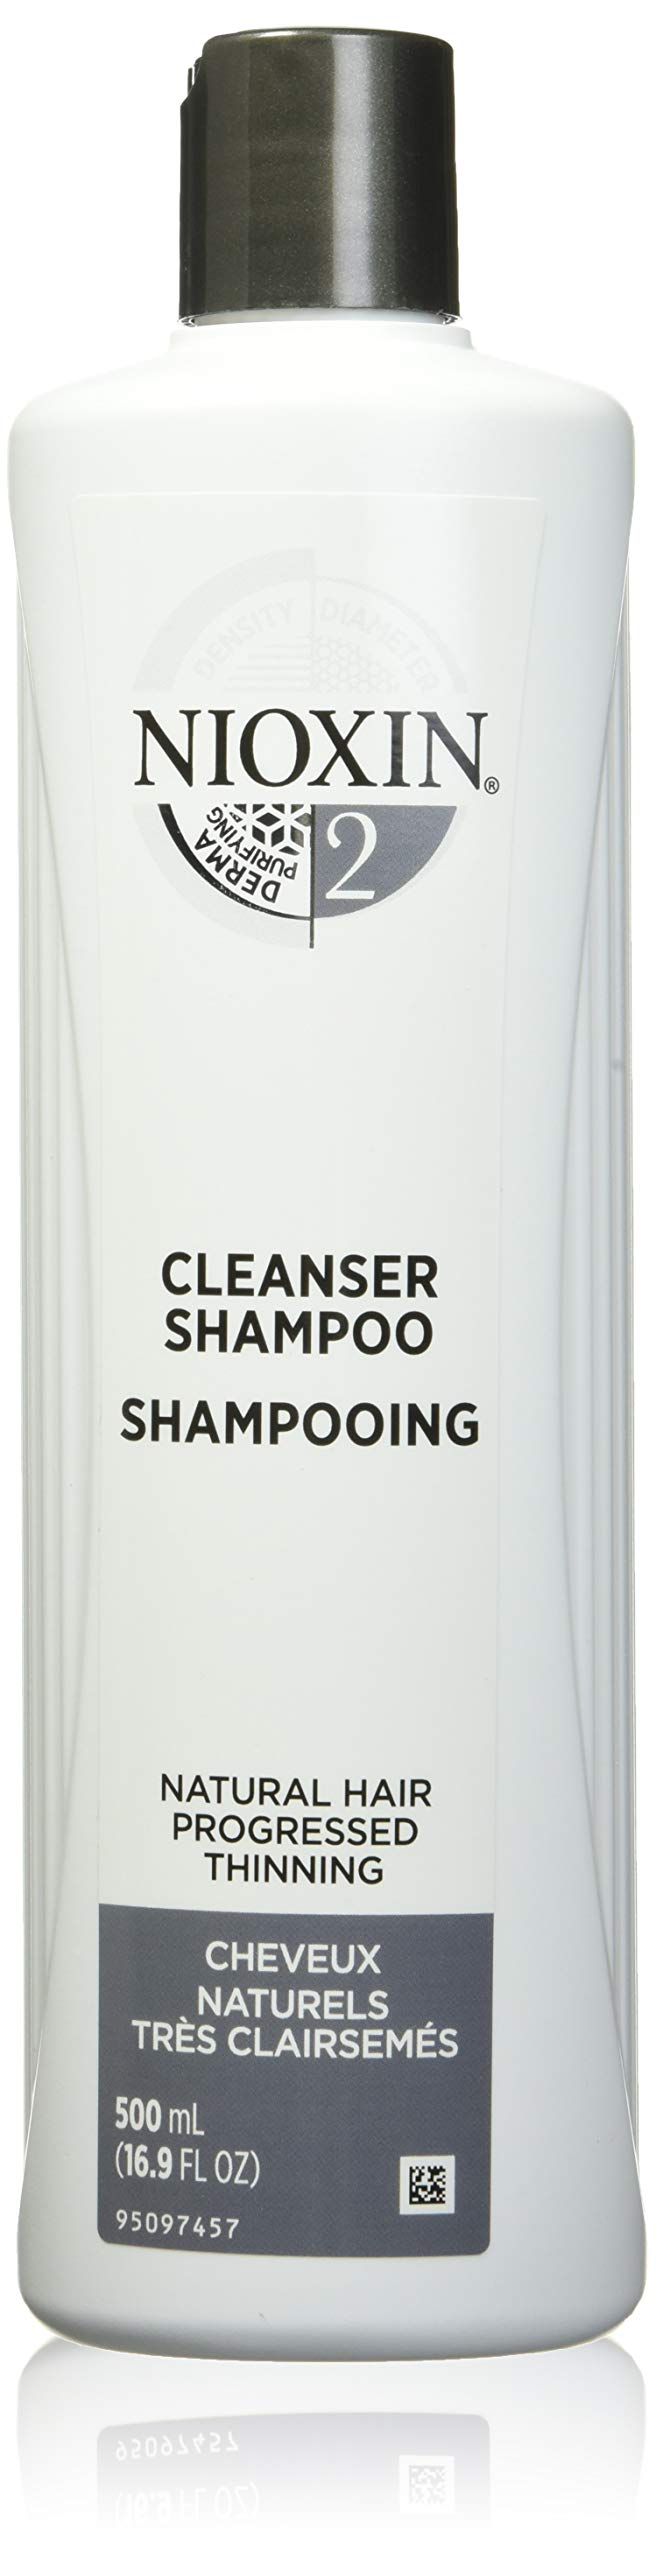 Nioxin System 2 Cleanser Shampoo for Natural Hair with Progressed Thinning, 16.9 oz